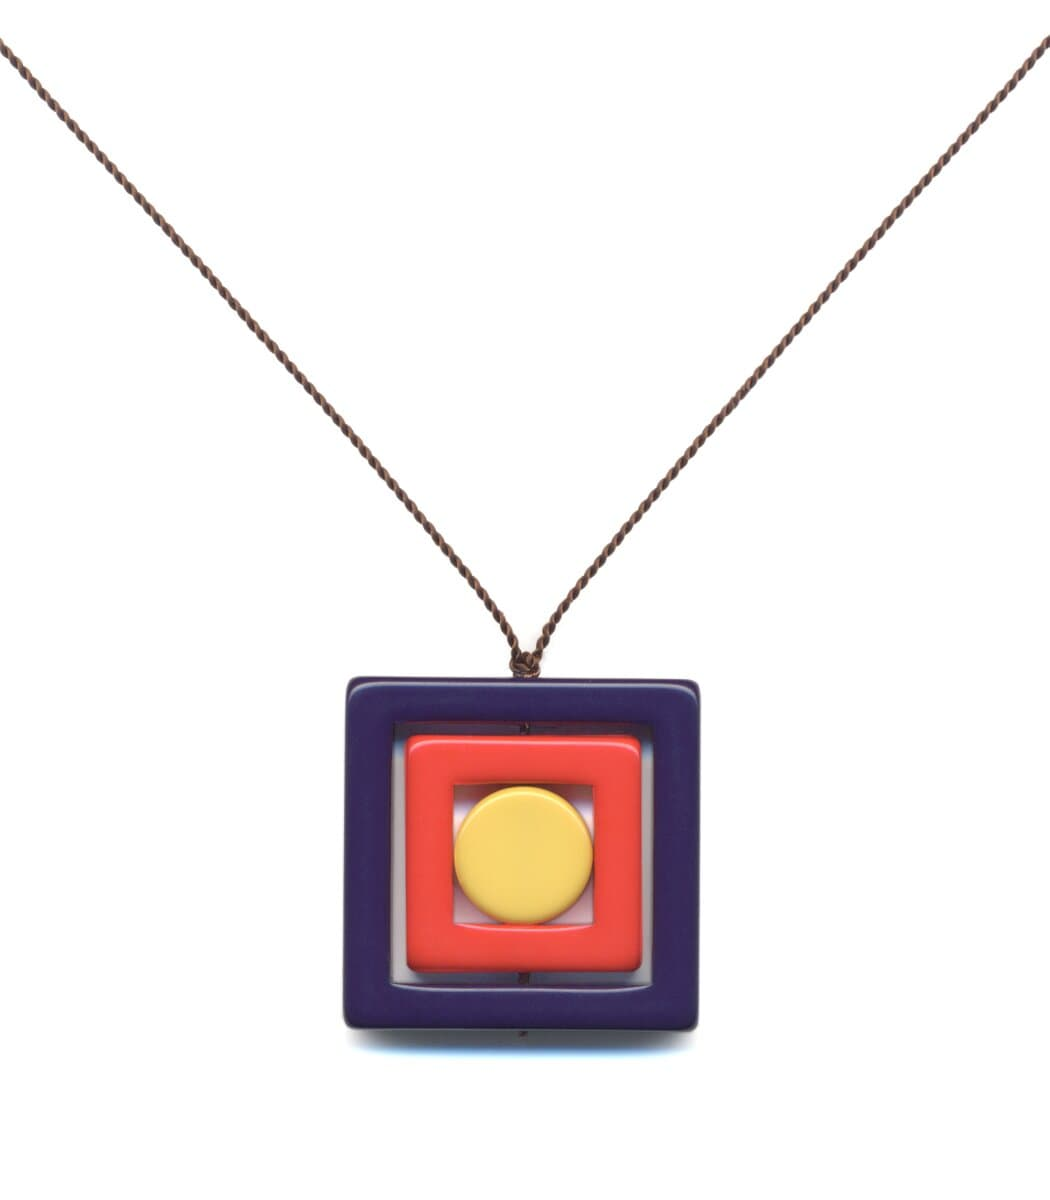 Irk Jewelry I. Ronni Kappos N1891 Navy Square Necklace